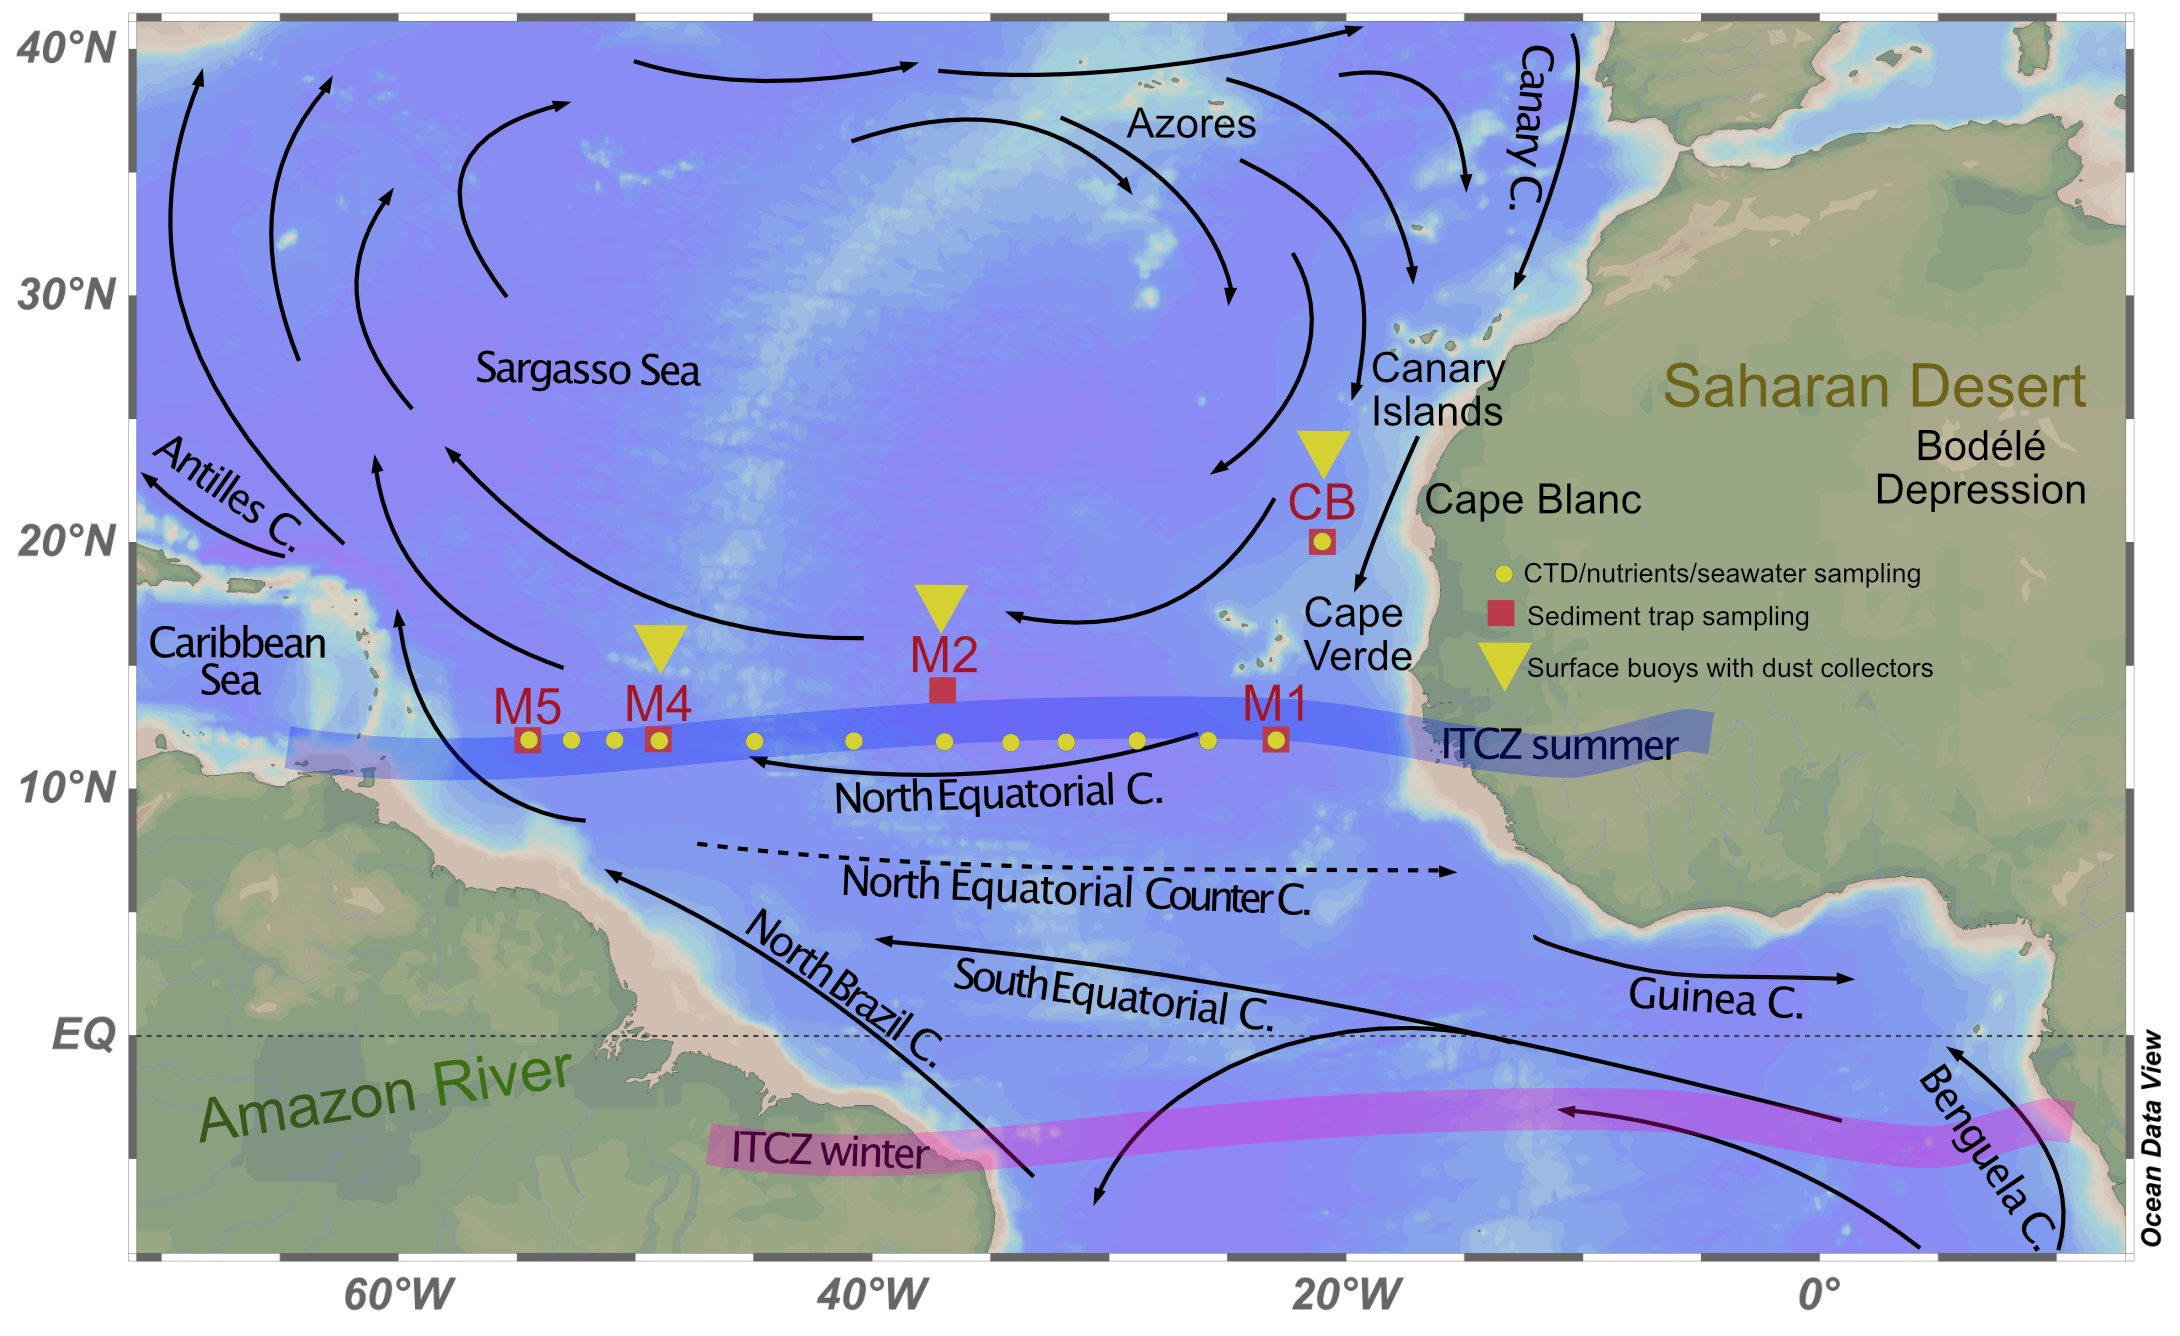 Location of the sediment trap (red dots) and plankton (yellow dots) stations under study, and of the multi-parametric buoys equipped with dust collectors (yellow triangles), located along a transatlantic array between the NW Africa (offshore Cape Blanc) and the Caribbean.